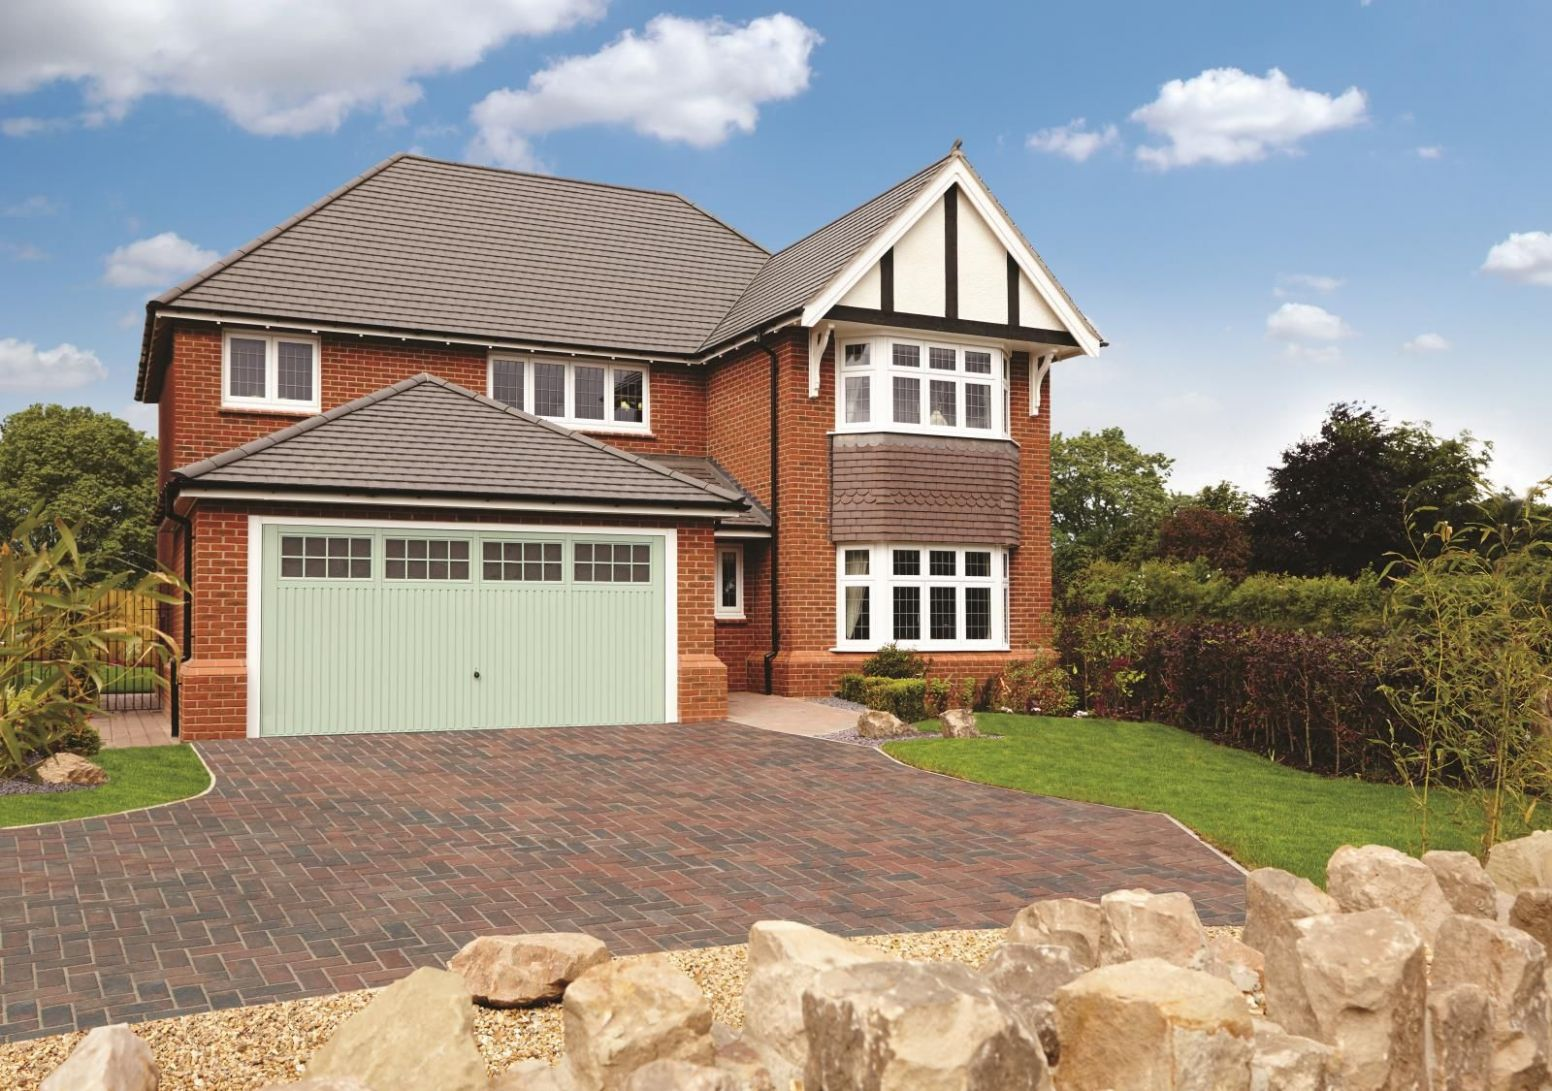 Visit our stunning Henley showhome at the New Heys development ..